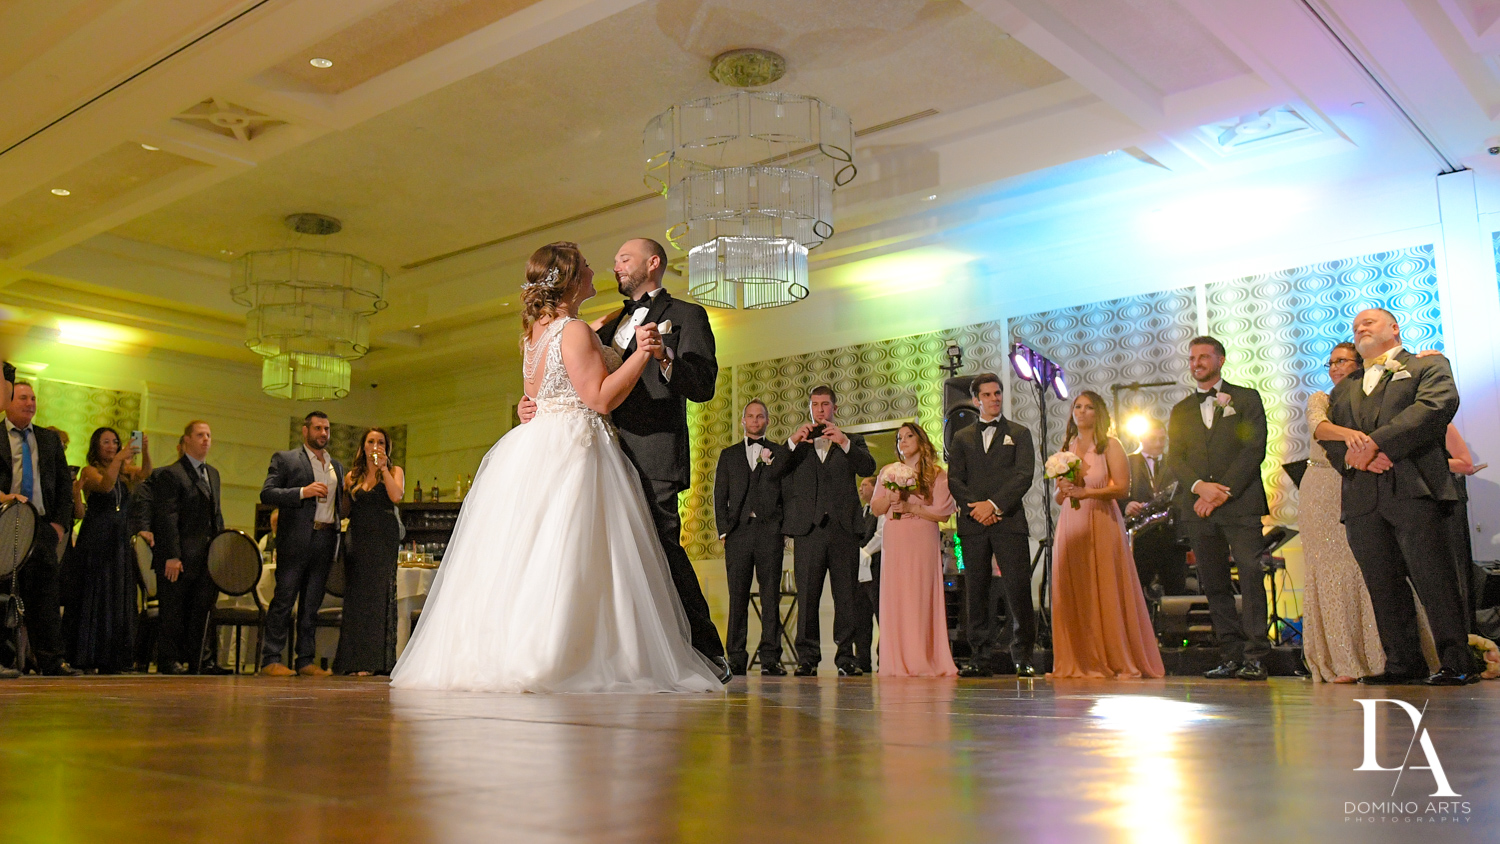 First dance at Romantic Wedding Woodfield Country Club in Boca Raton, Florida by Domino Arts Photography